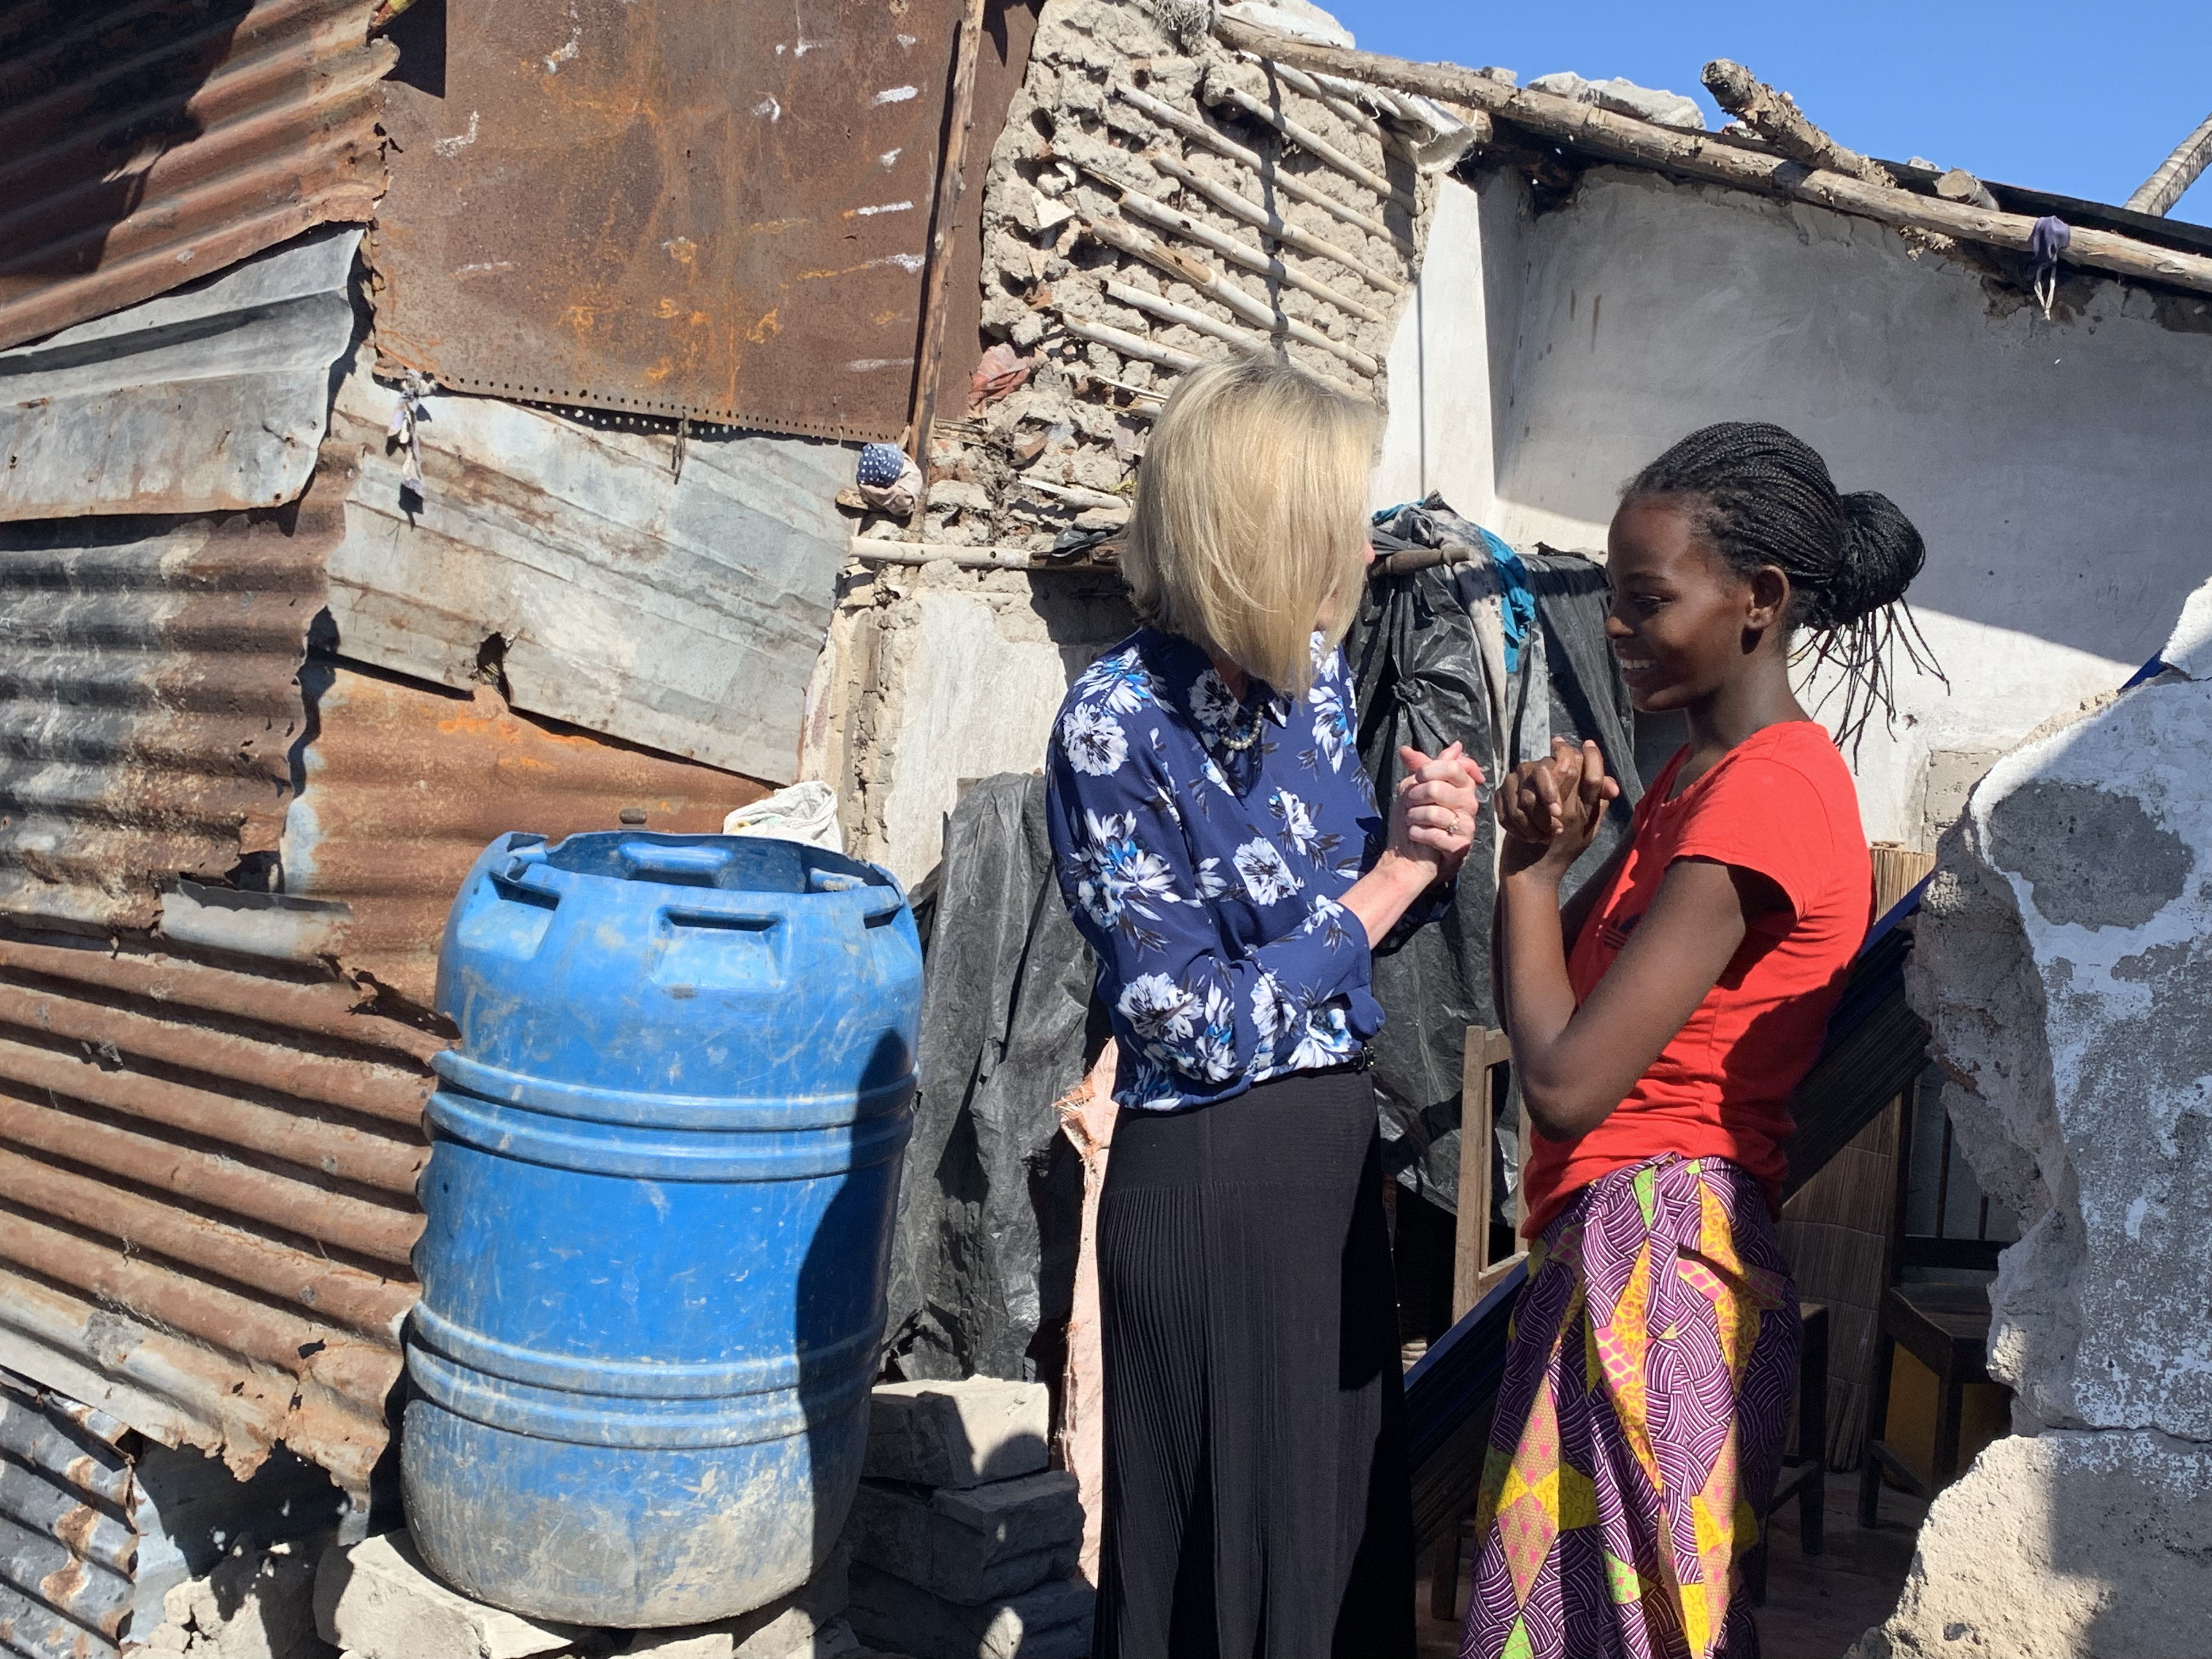 Sister Bonnie H. Cordon speaks with a young girl in Beira, Mozambique while visiting the homes of members that were destroyed in a recent cyclone in the area.